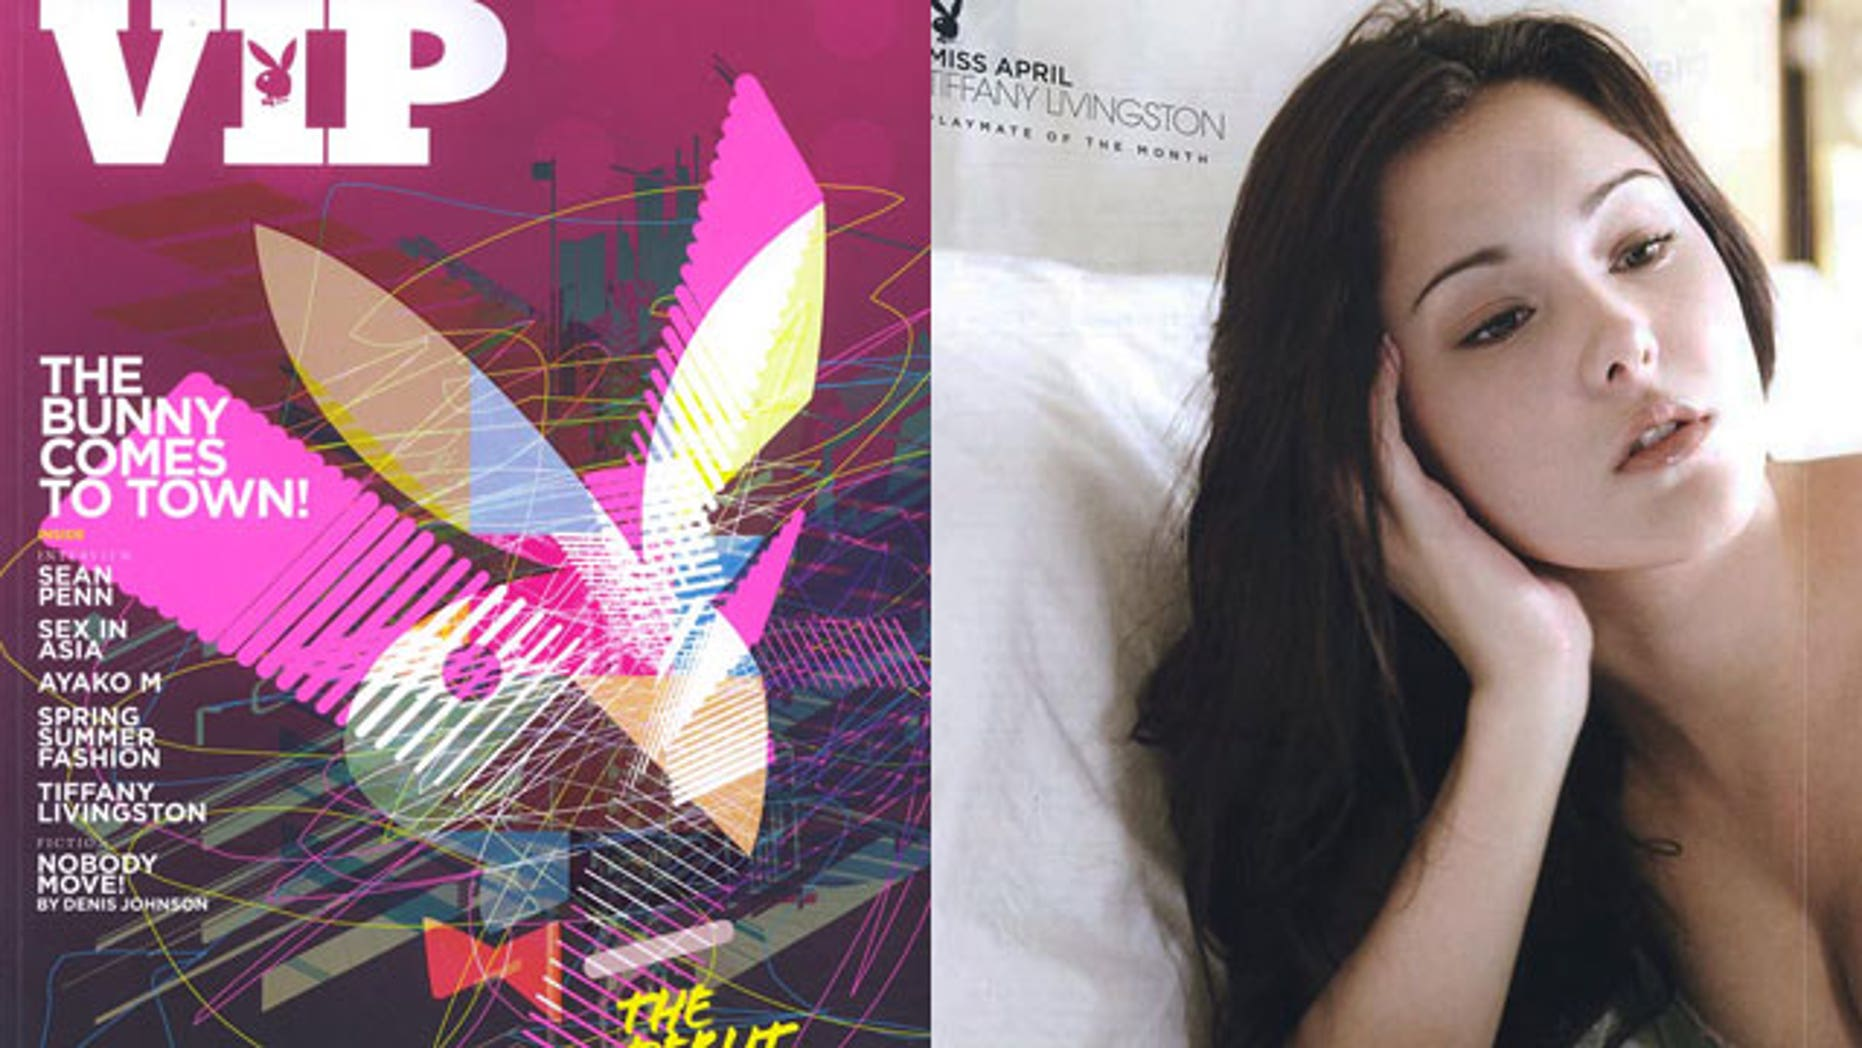 A model who appeared on the cover of Singapore's version of Playboy was detained yesterday after trying to escape from the plane mid-flight.